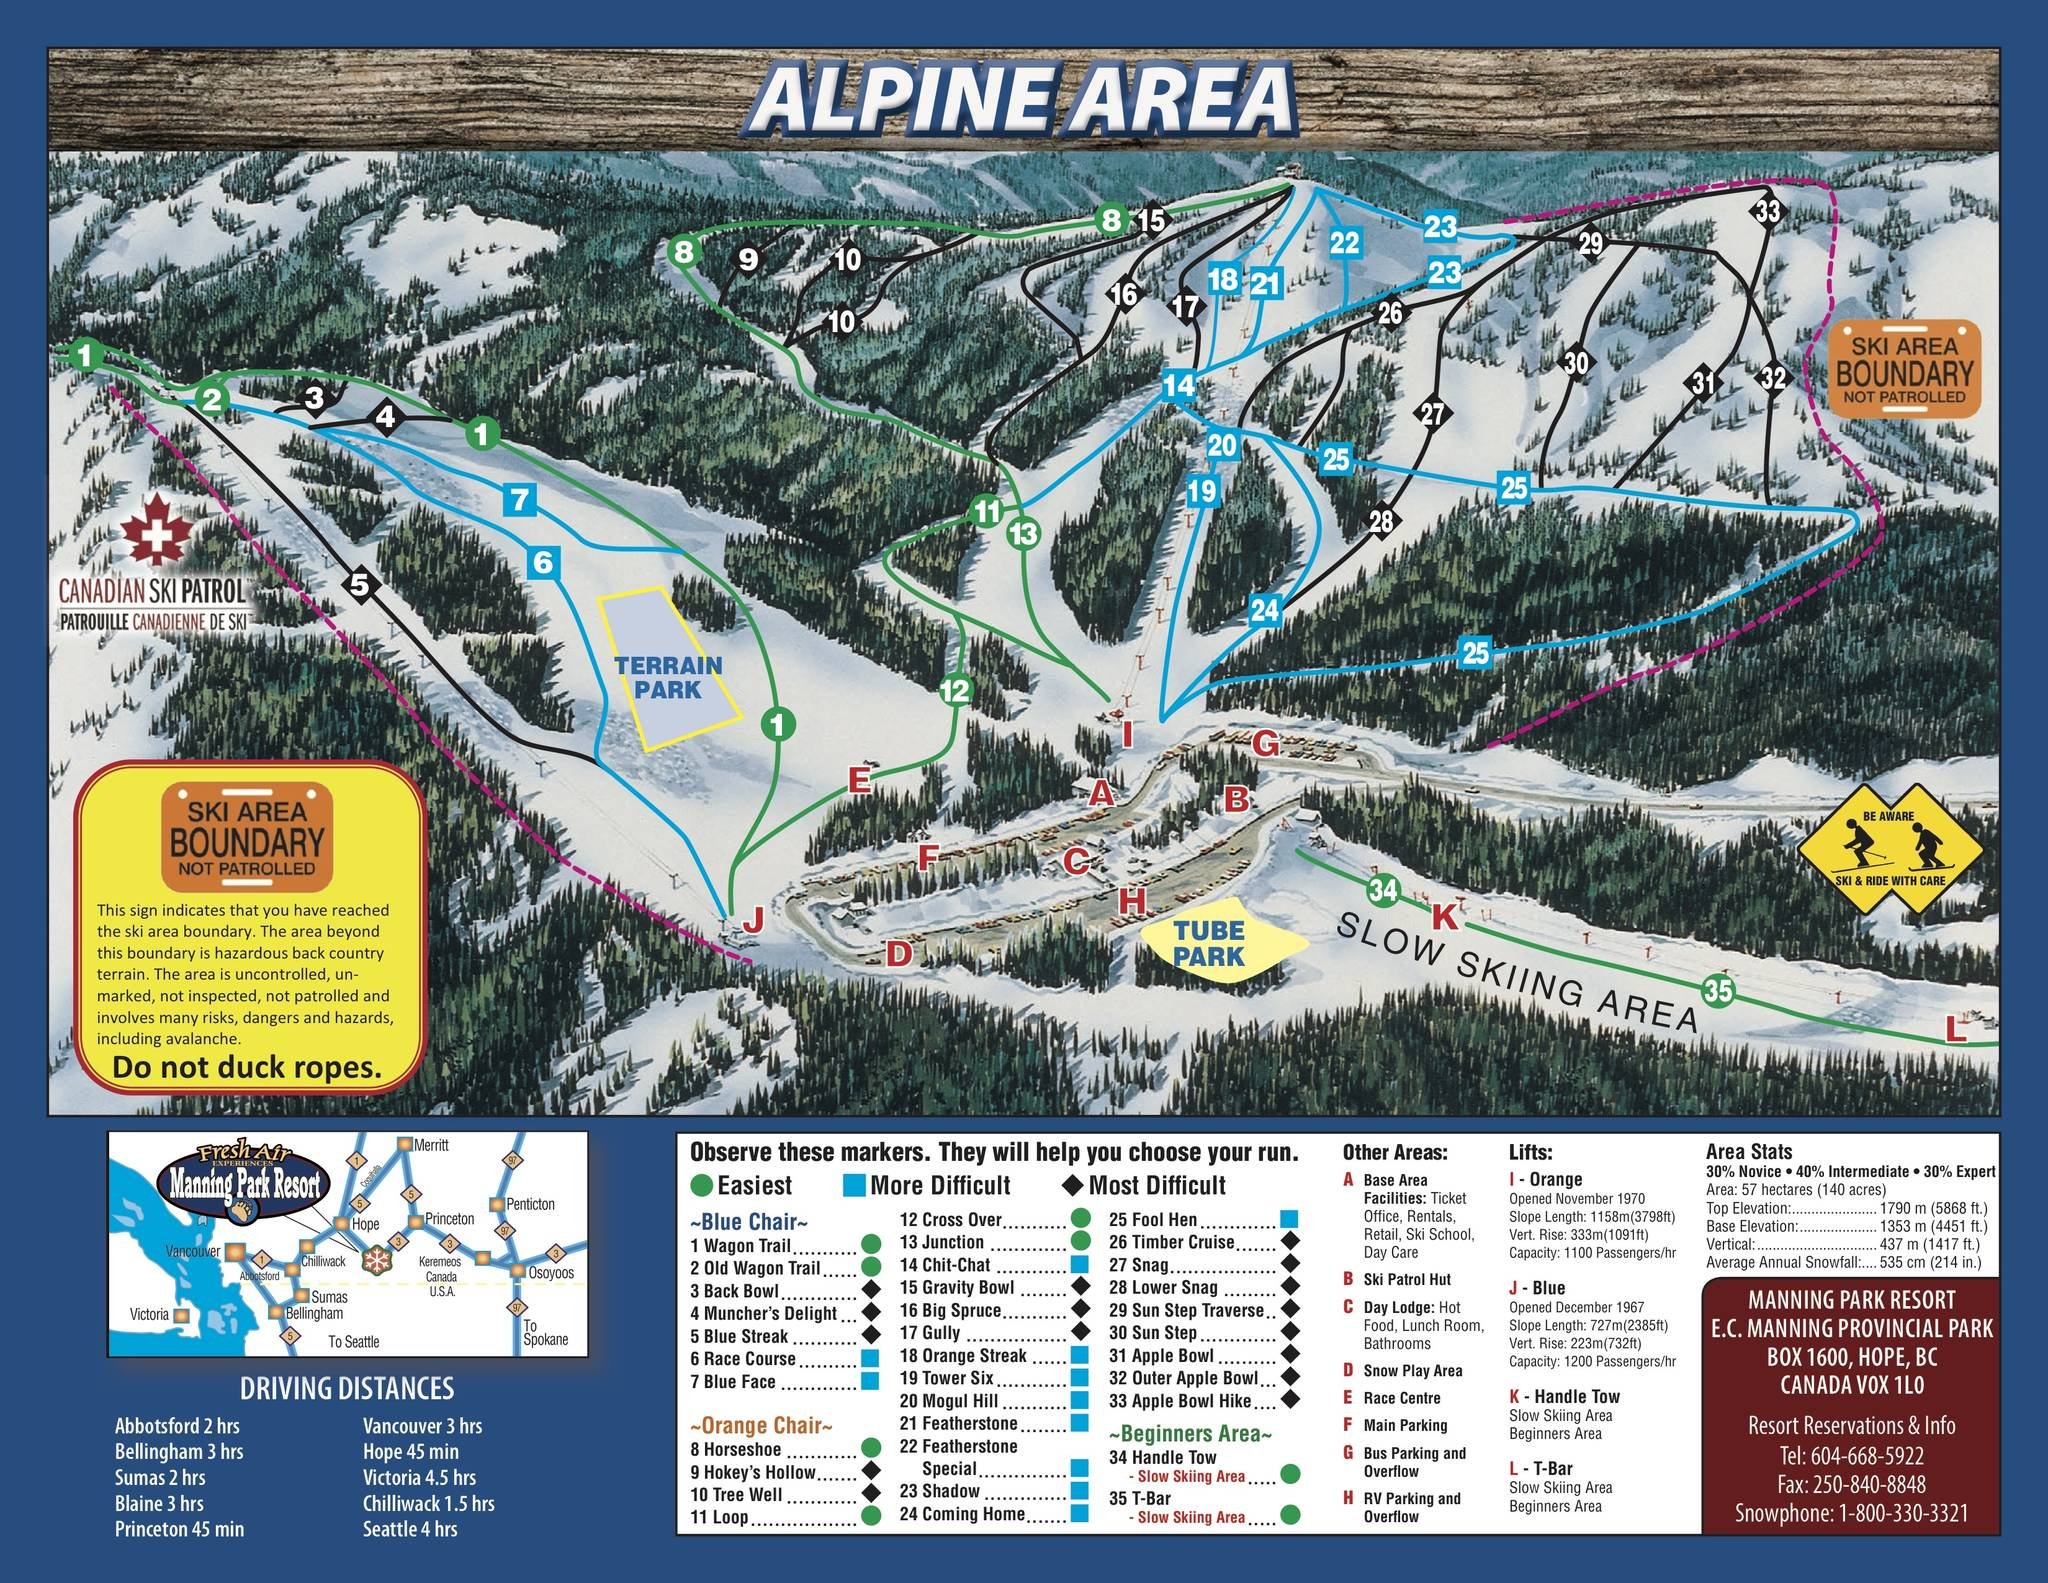 The Orange Chairlift (indicated by the letter I) which services the main ski area at Manning Park Resort will be replaced with a new quad (four-person) chairlift at the end of this ski season. Manning Park Resort map